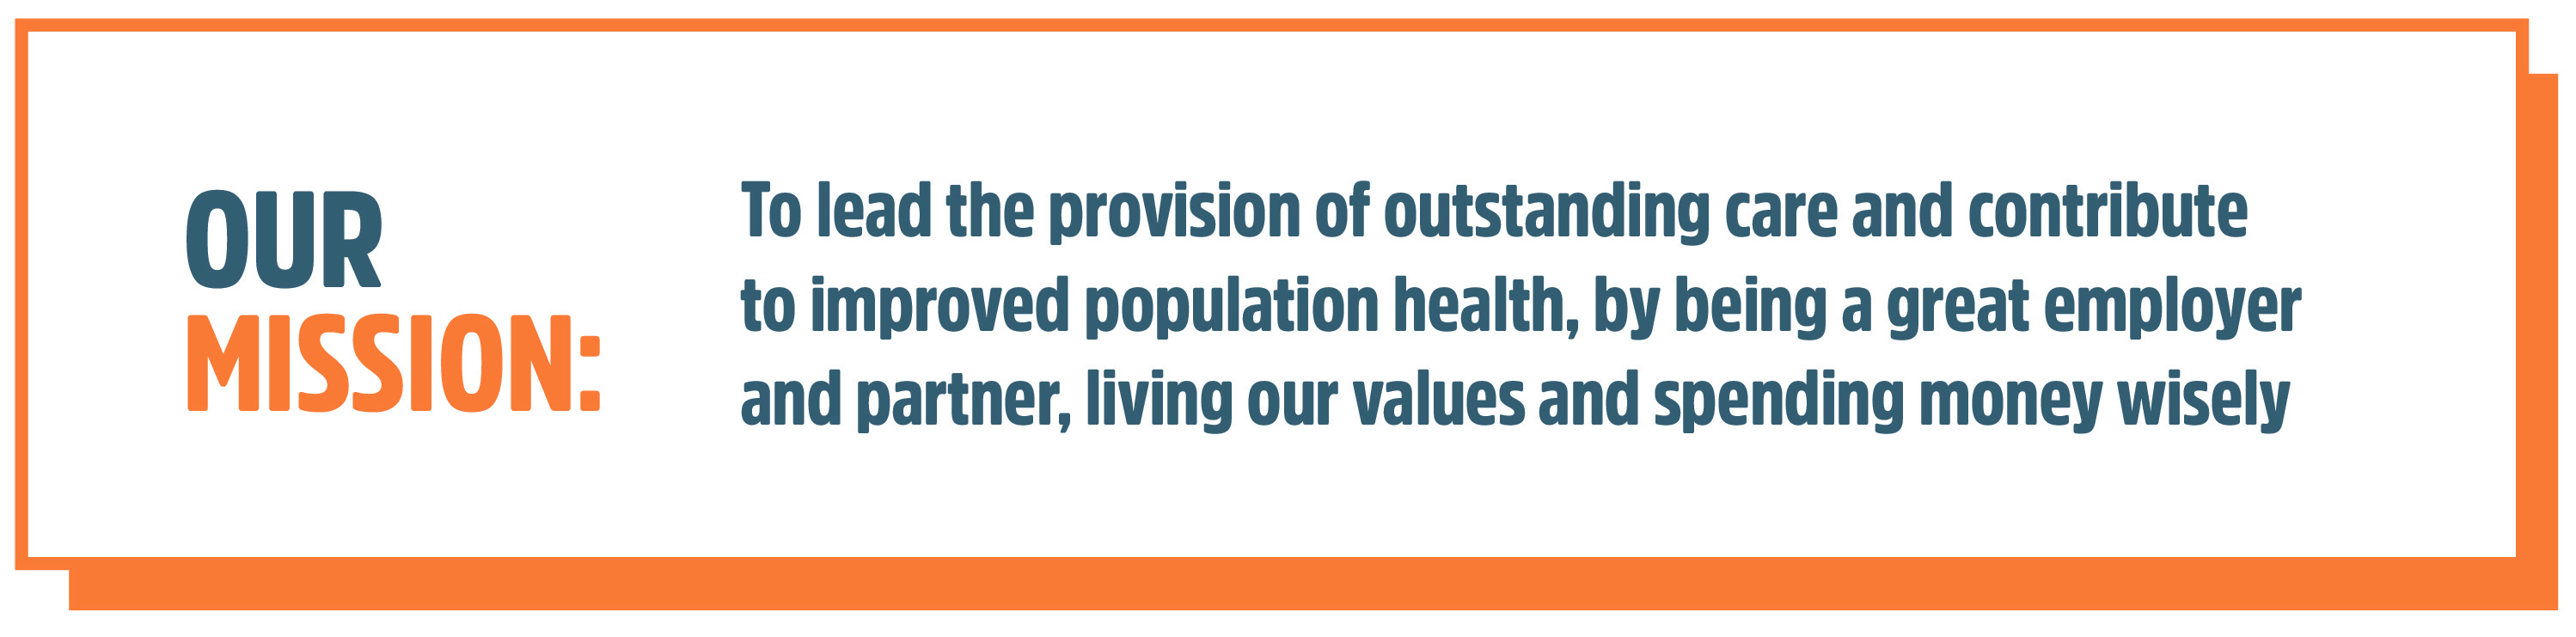 Our Mission: To lead the provision of outstanding care and contribute to improved population health, by being a great employer and partner, living our values and spending money wisely.